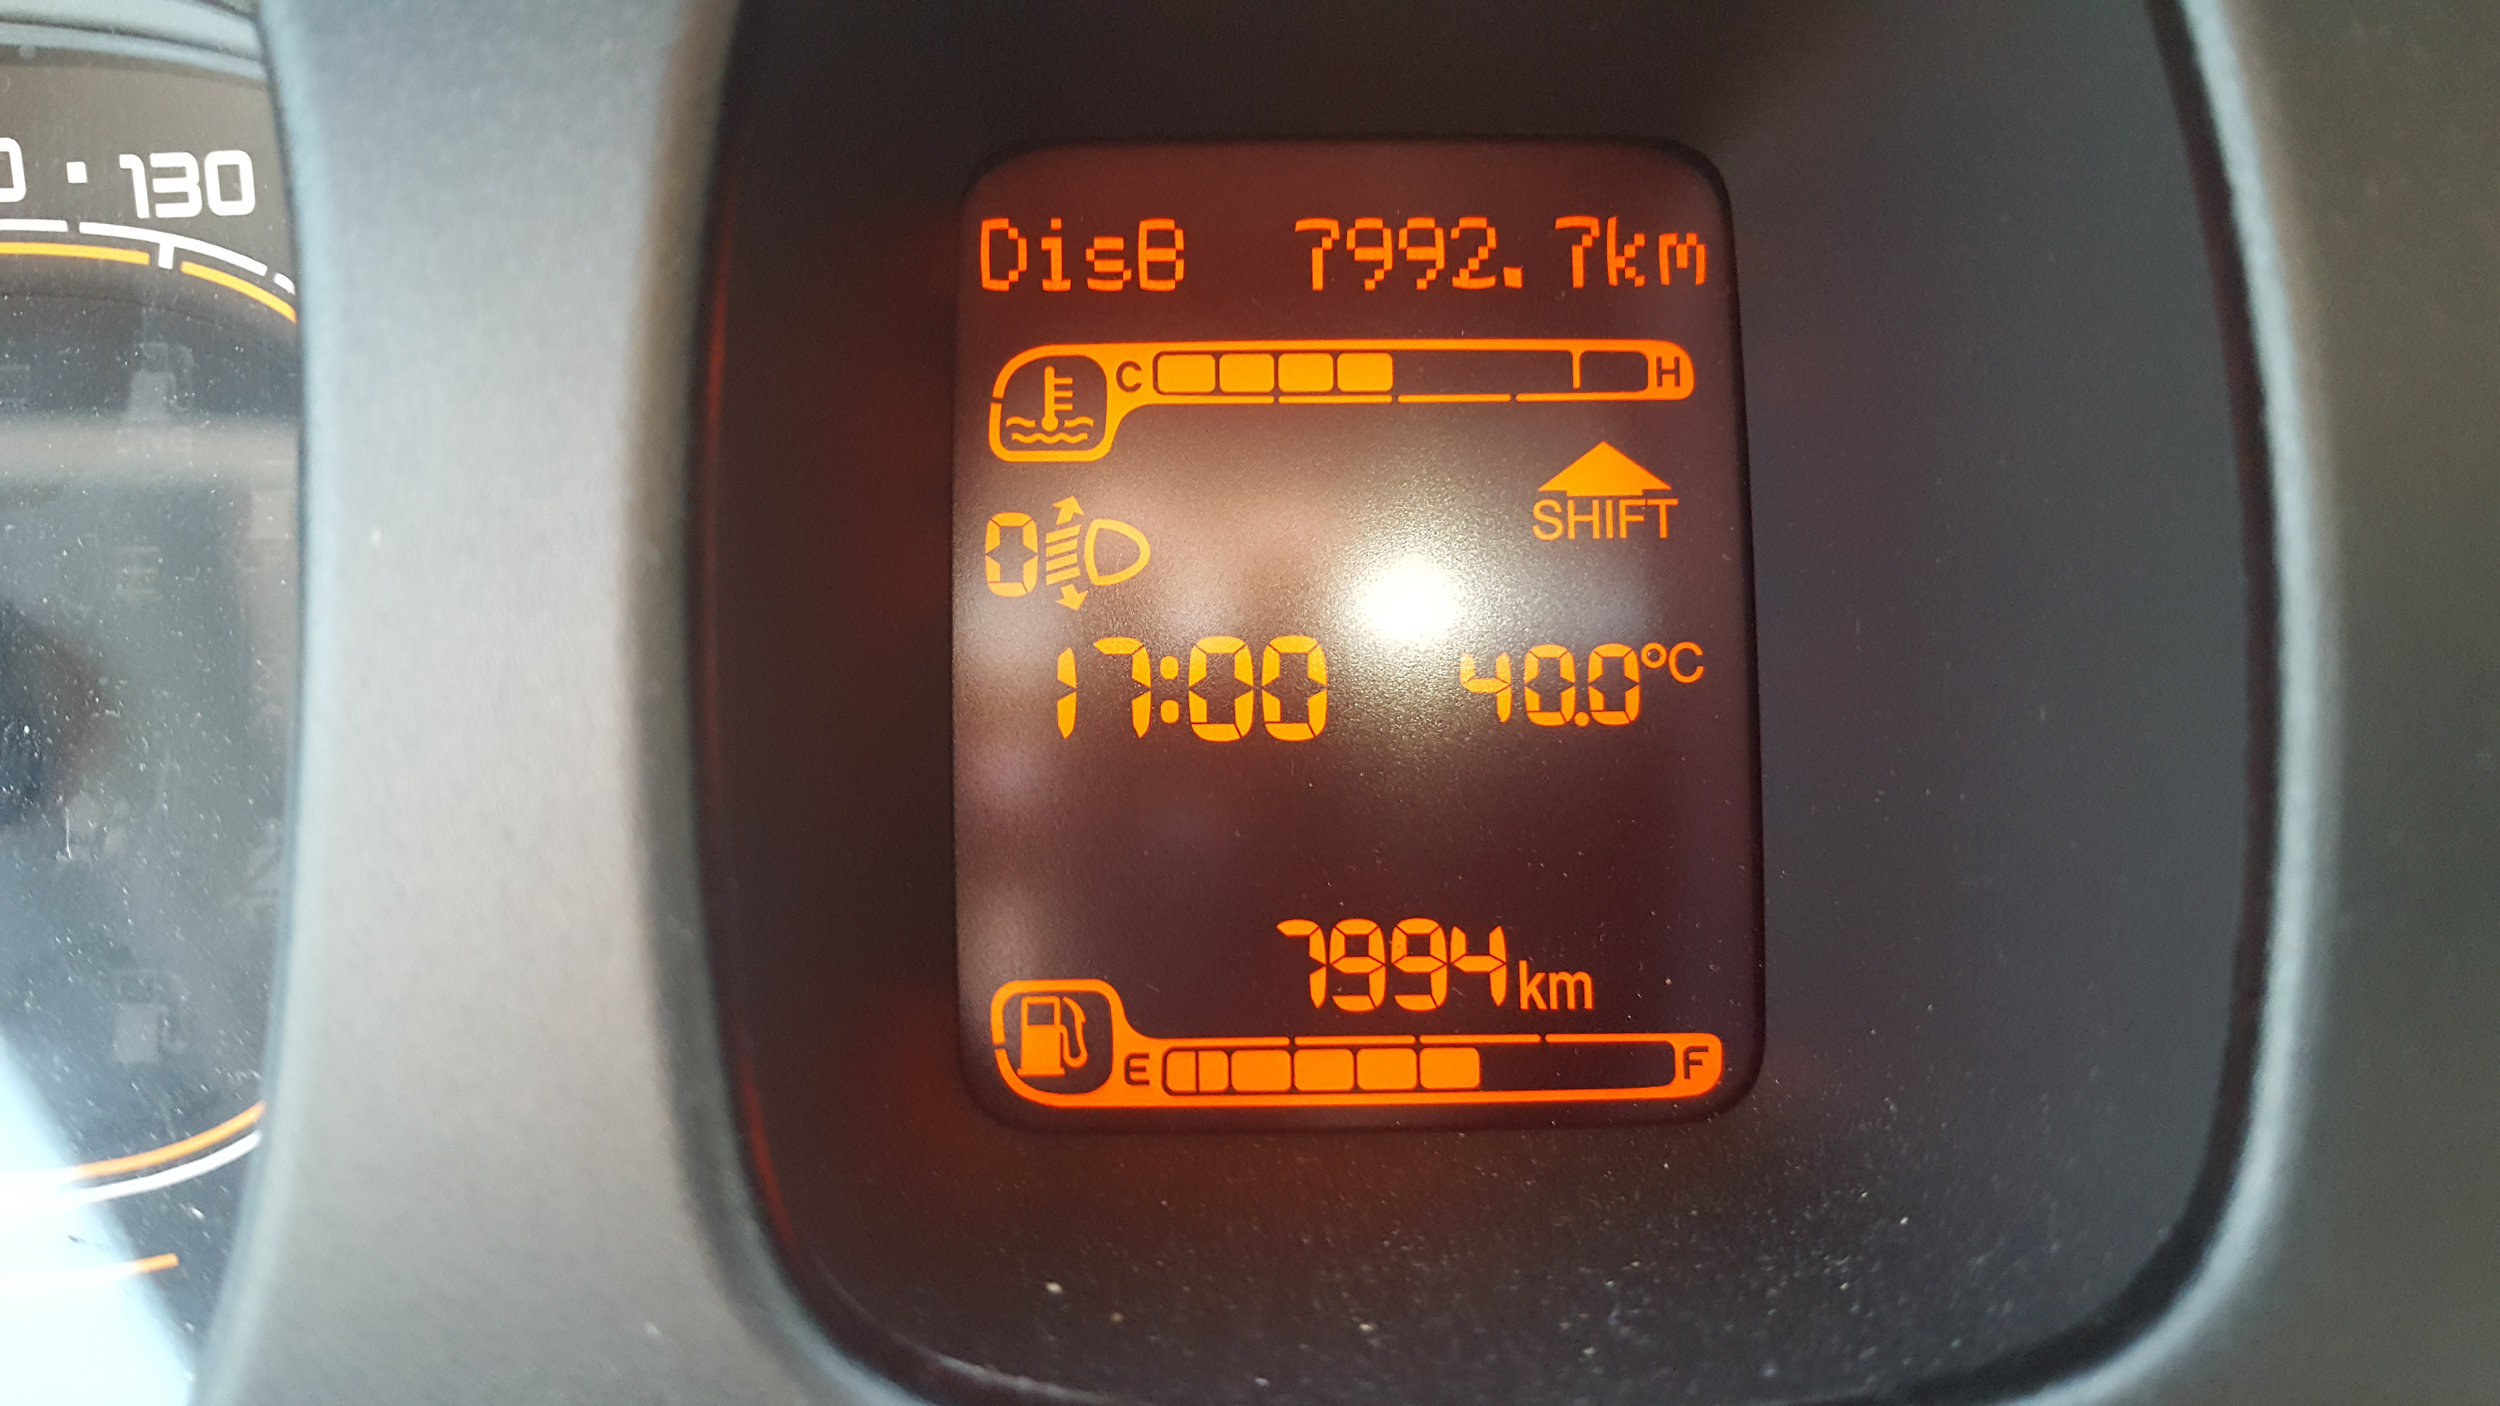 The temperature near Milan was +40.0C